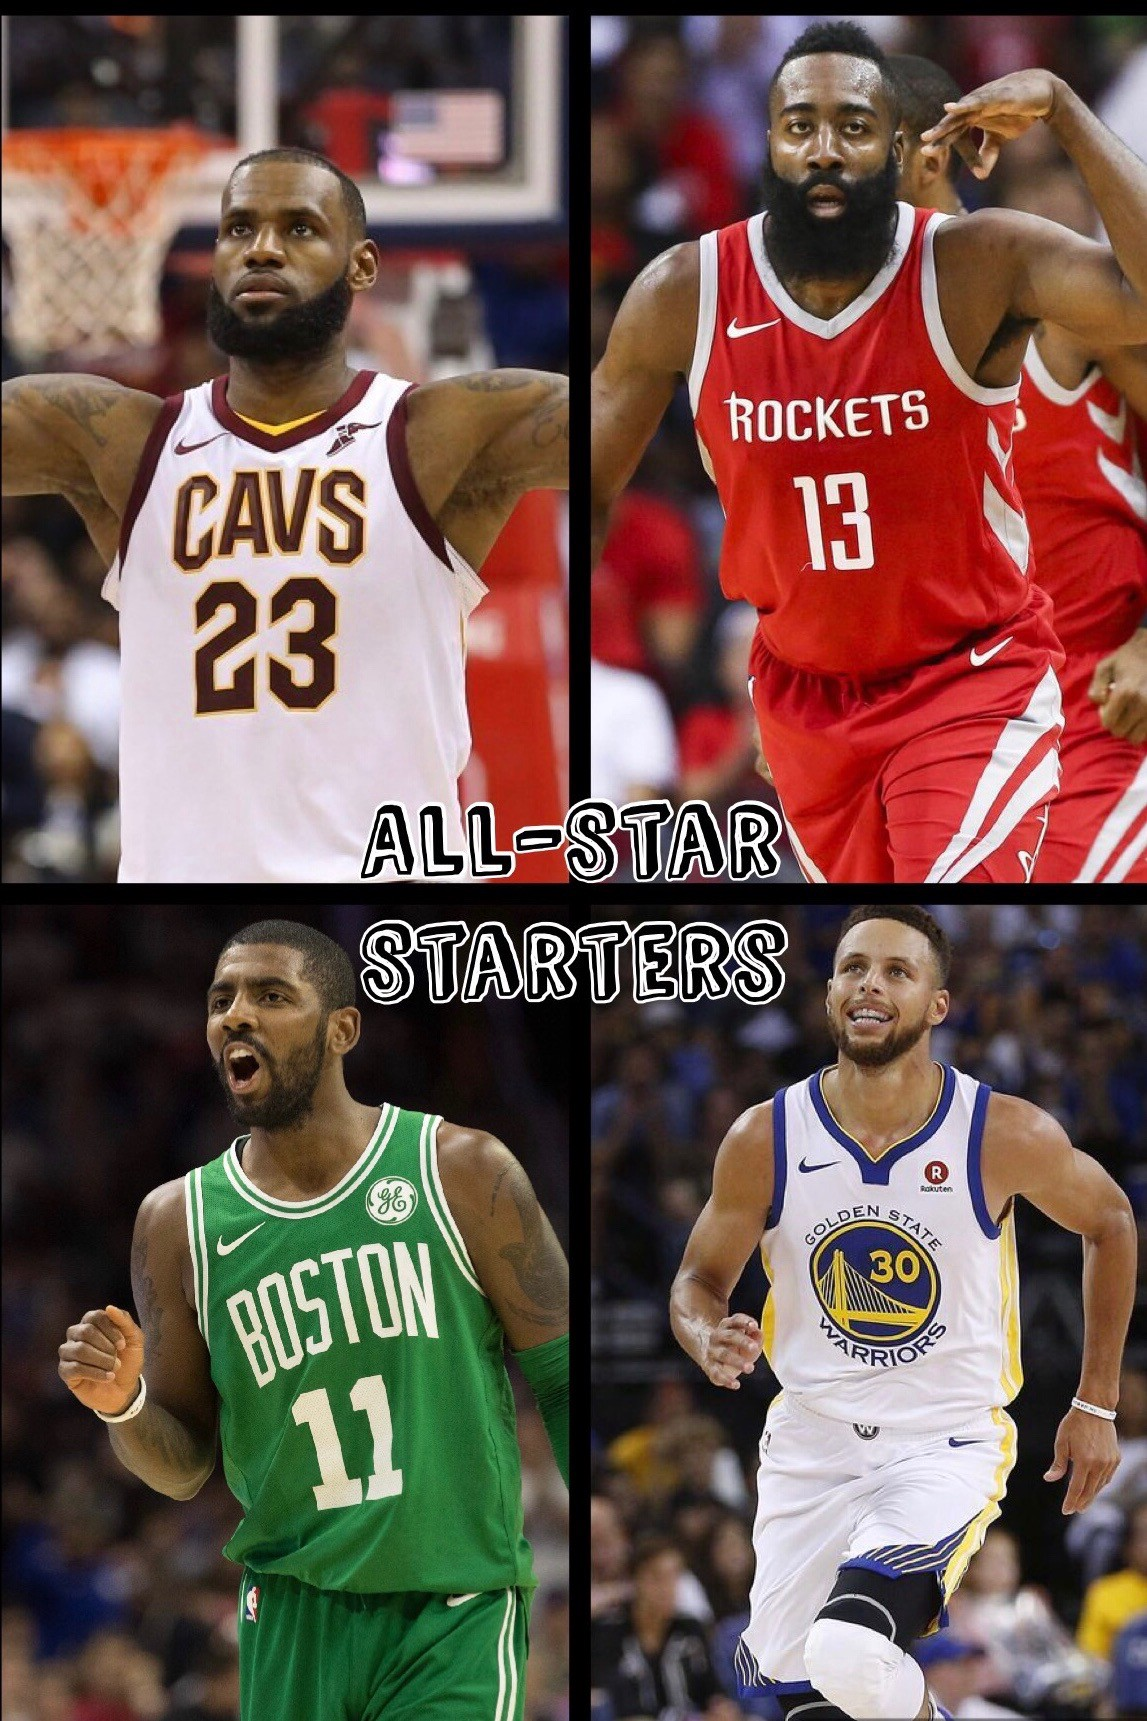 6d70a840c60 The actual All-Star starters will come out Thursday on TNT. Currently, the  starters for the Eastern Conference would be: Kyrie Irving, DeMar DeRozan,  ...